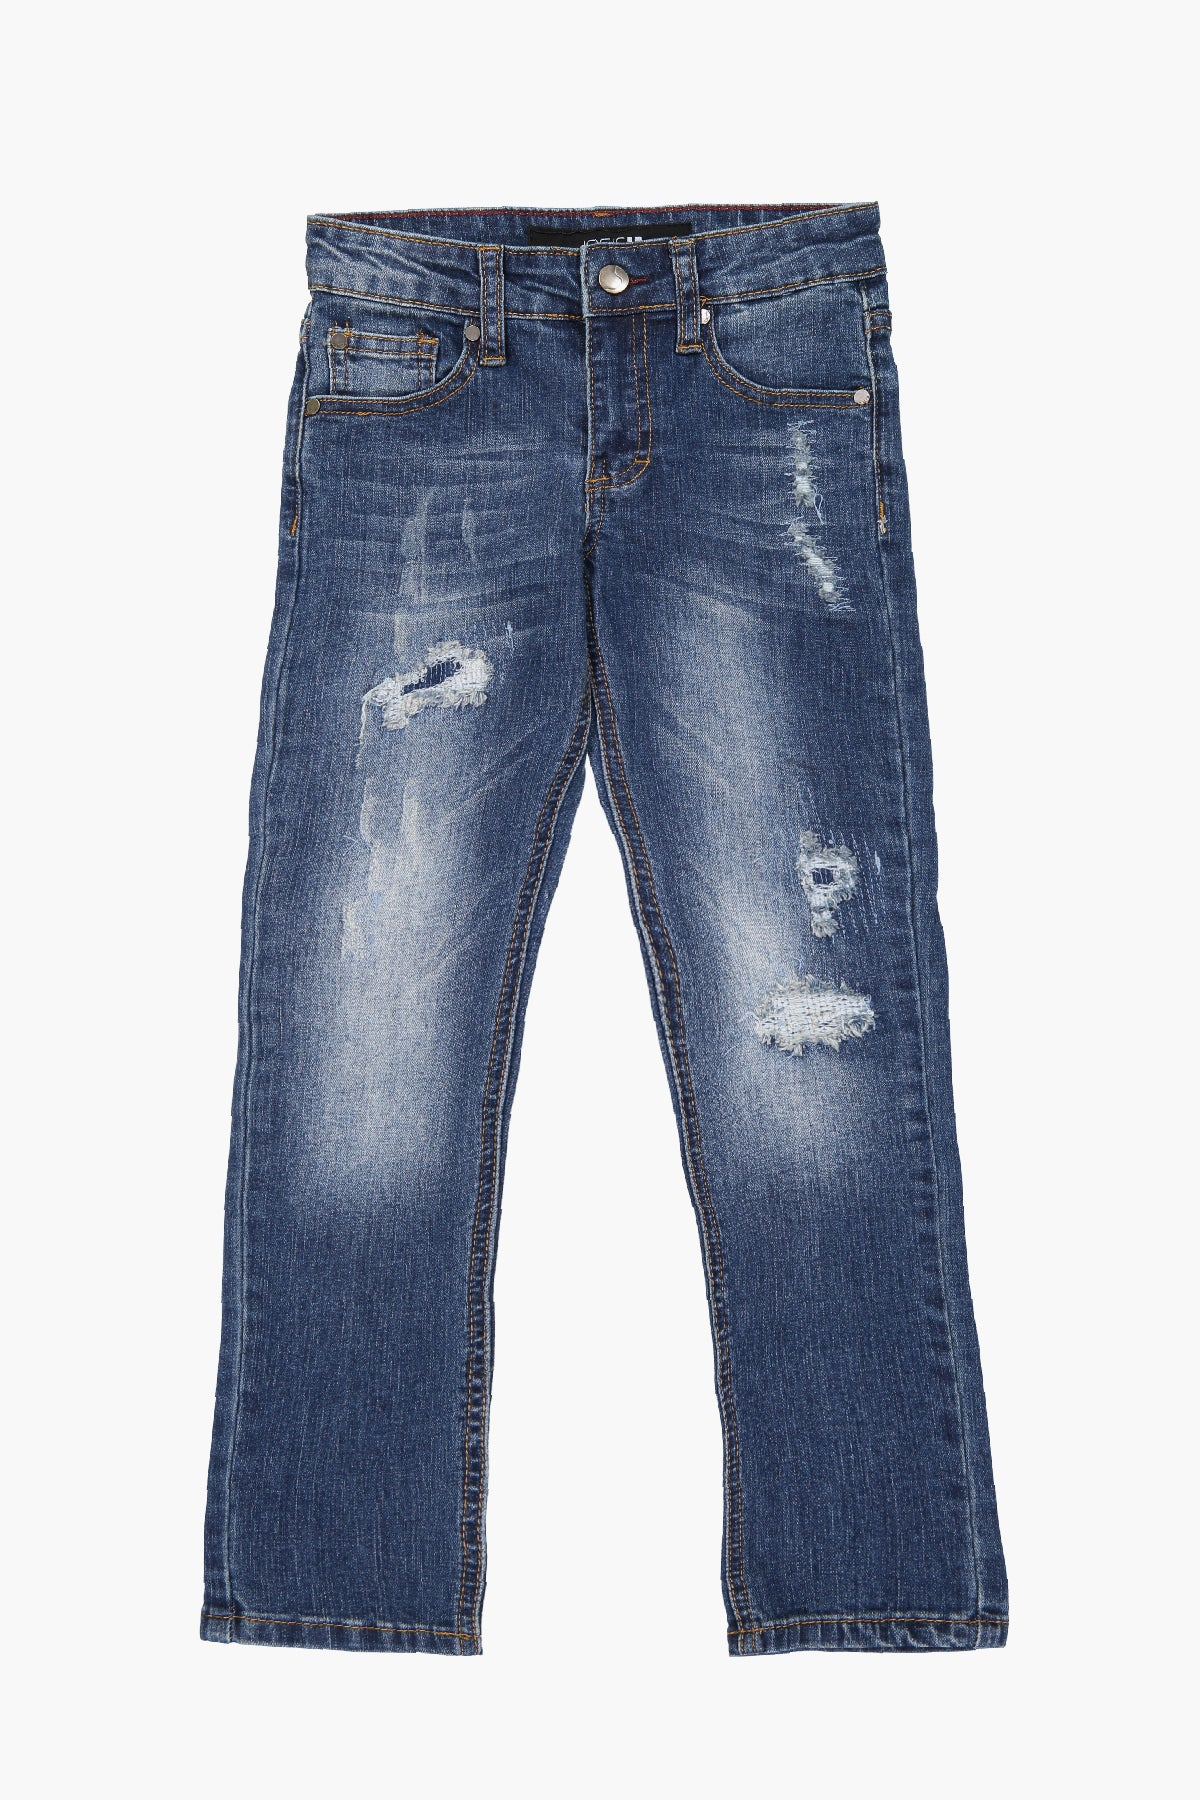 Joe's Jeans Rad Denim Boys Jeans